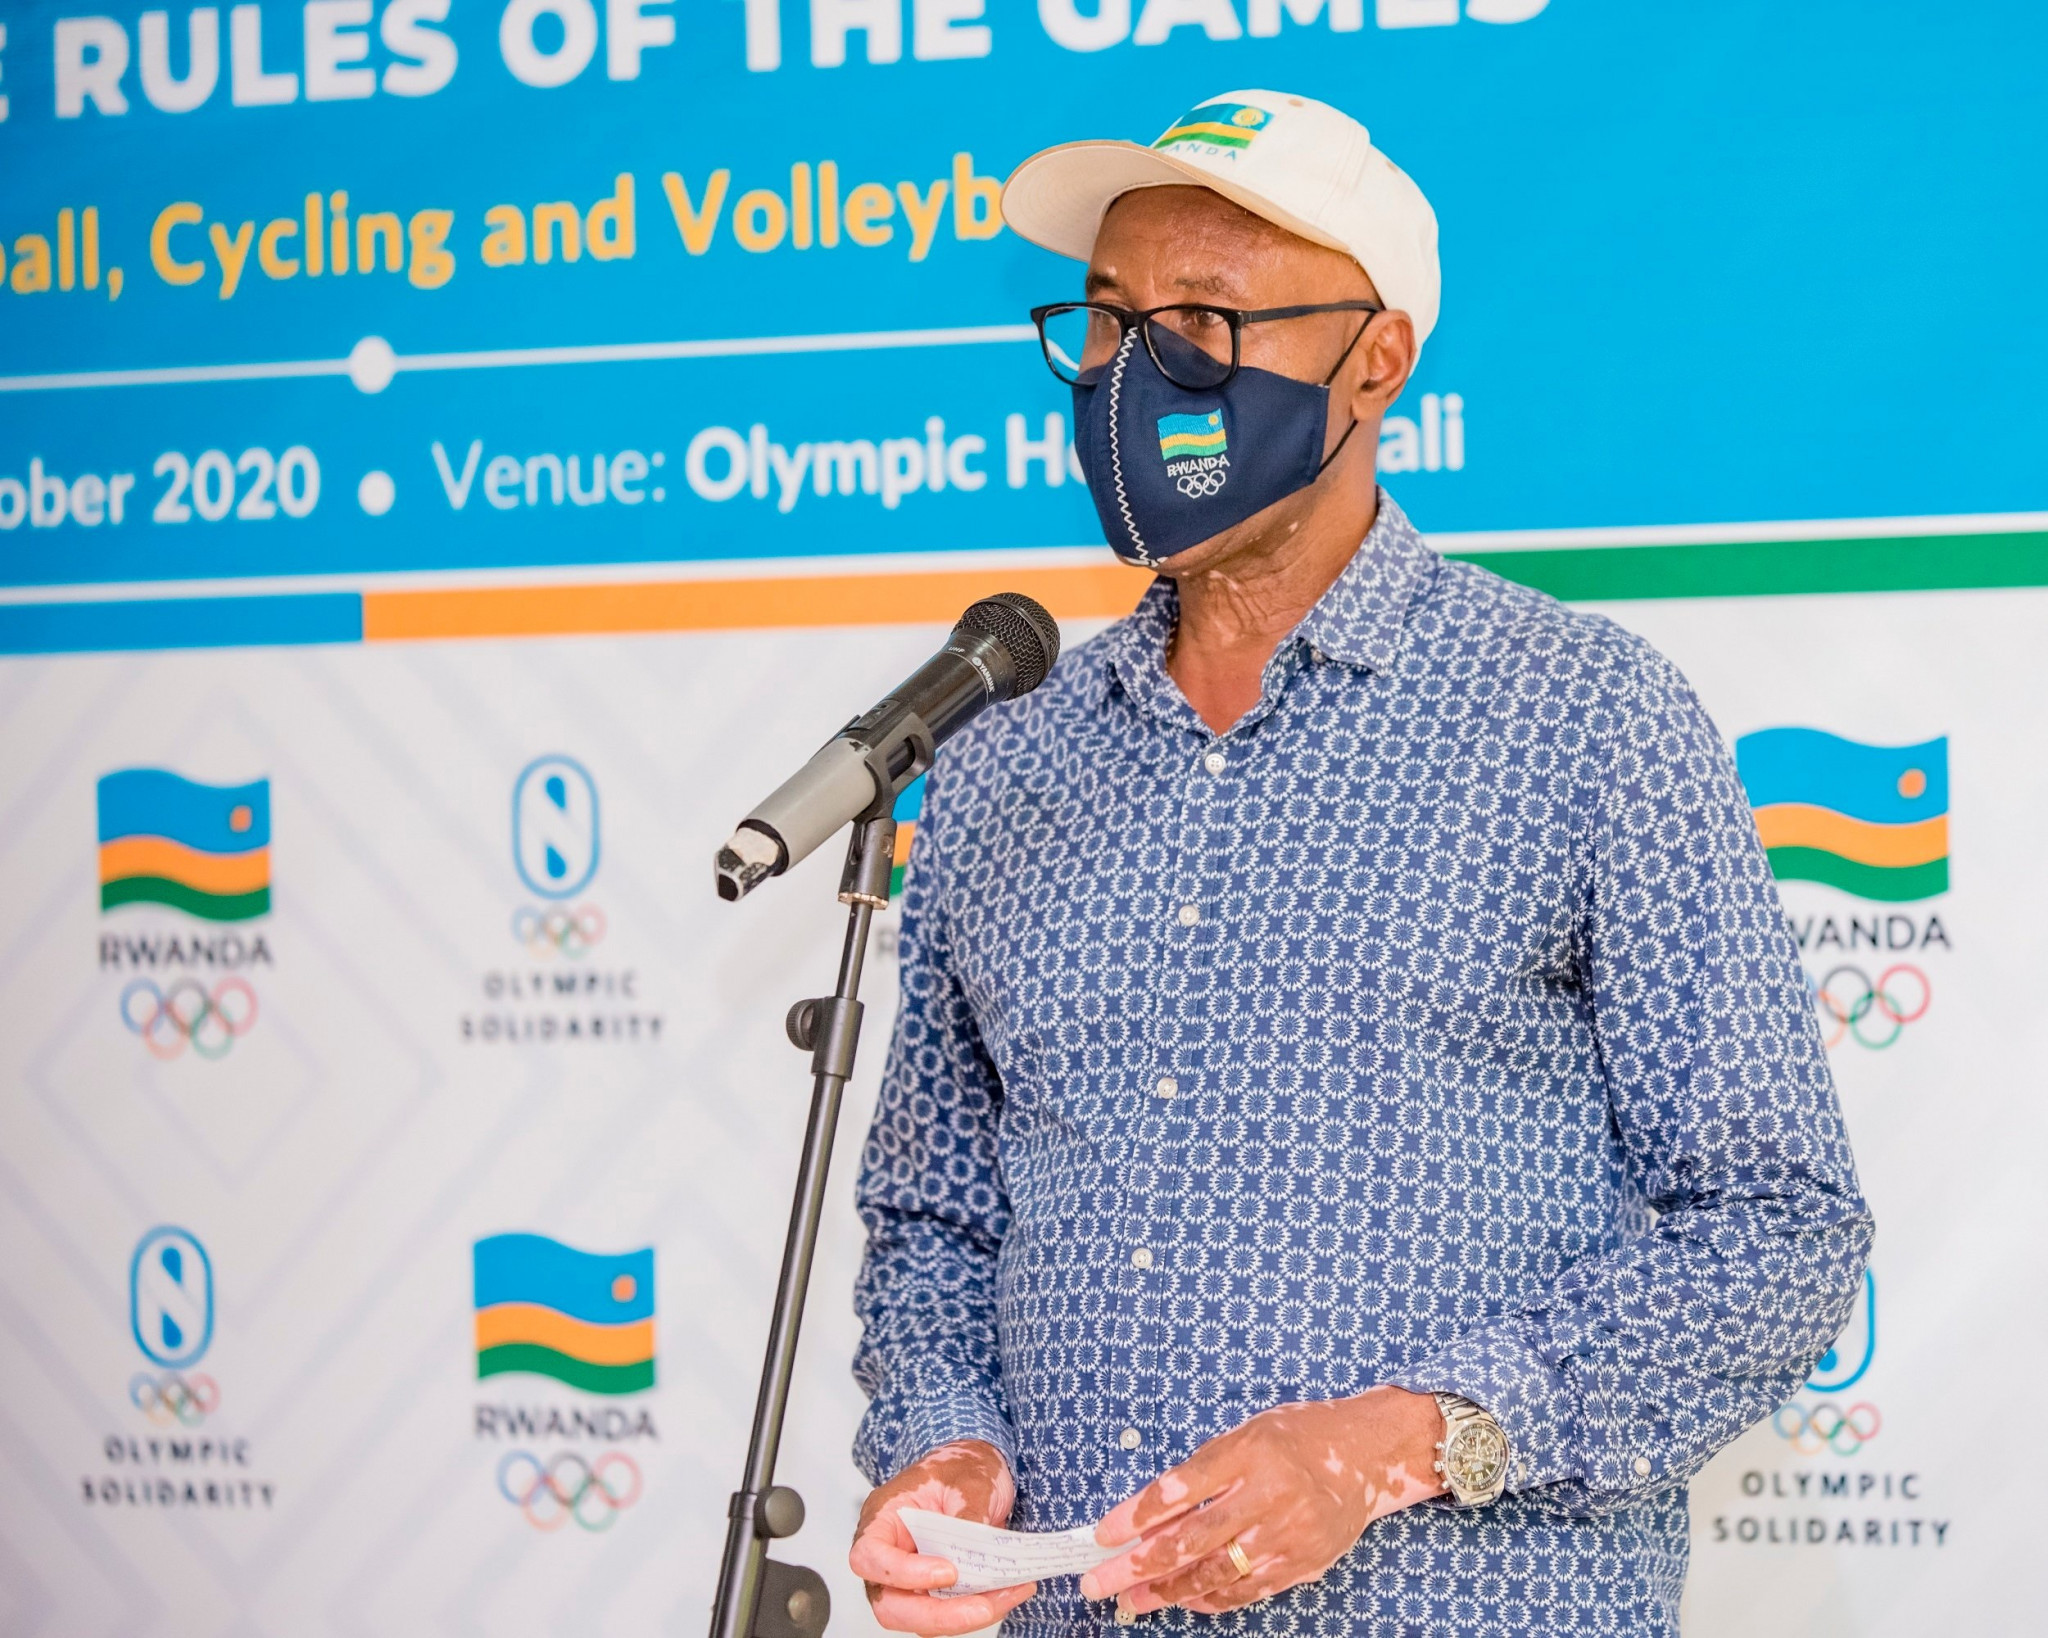 Rwanda NOC to hold training camp as part of two-year plan for 2022 African Youth Games success